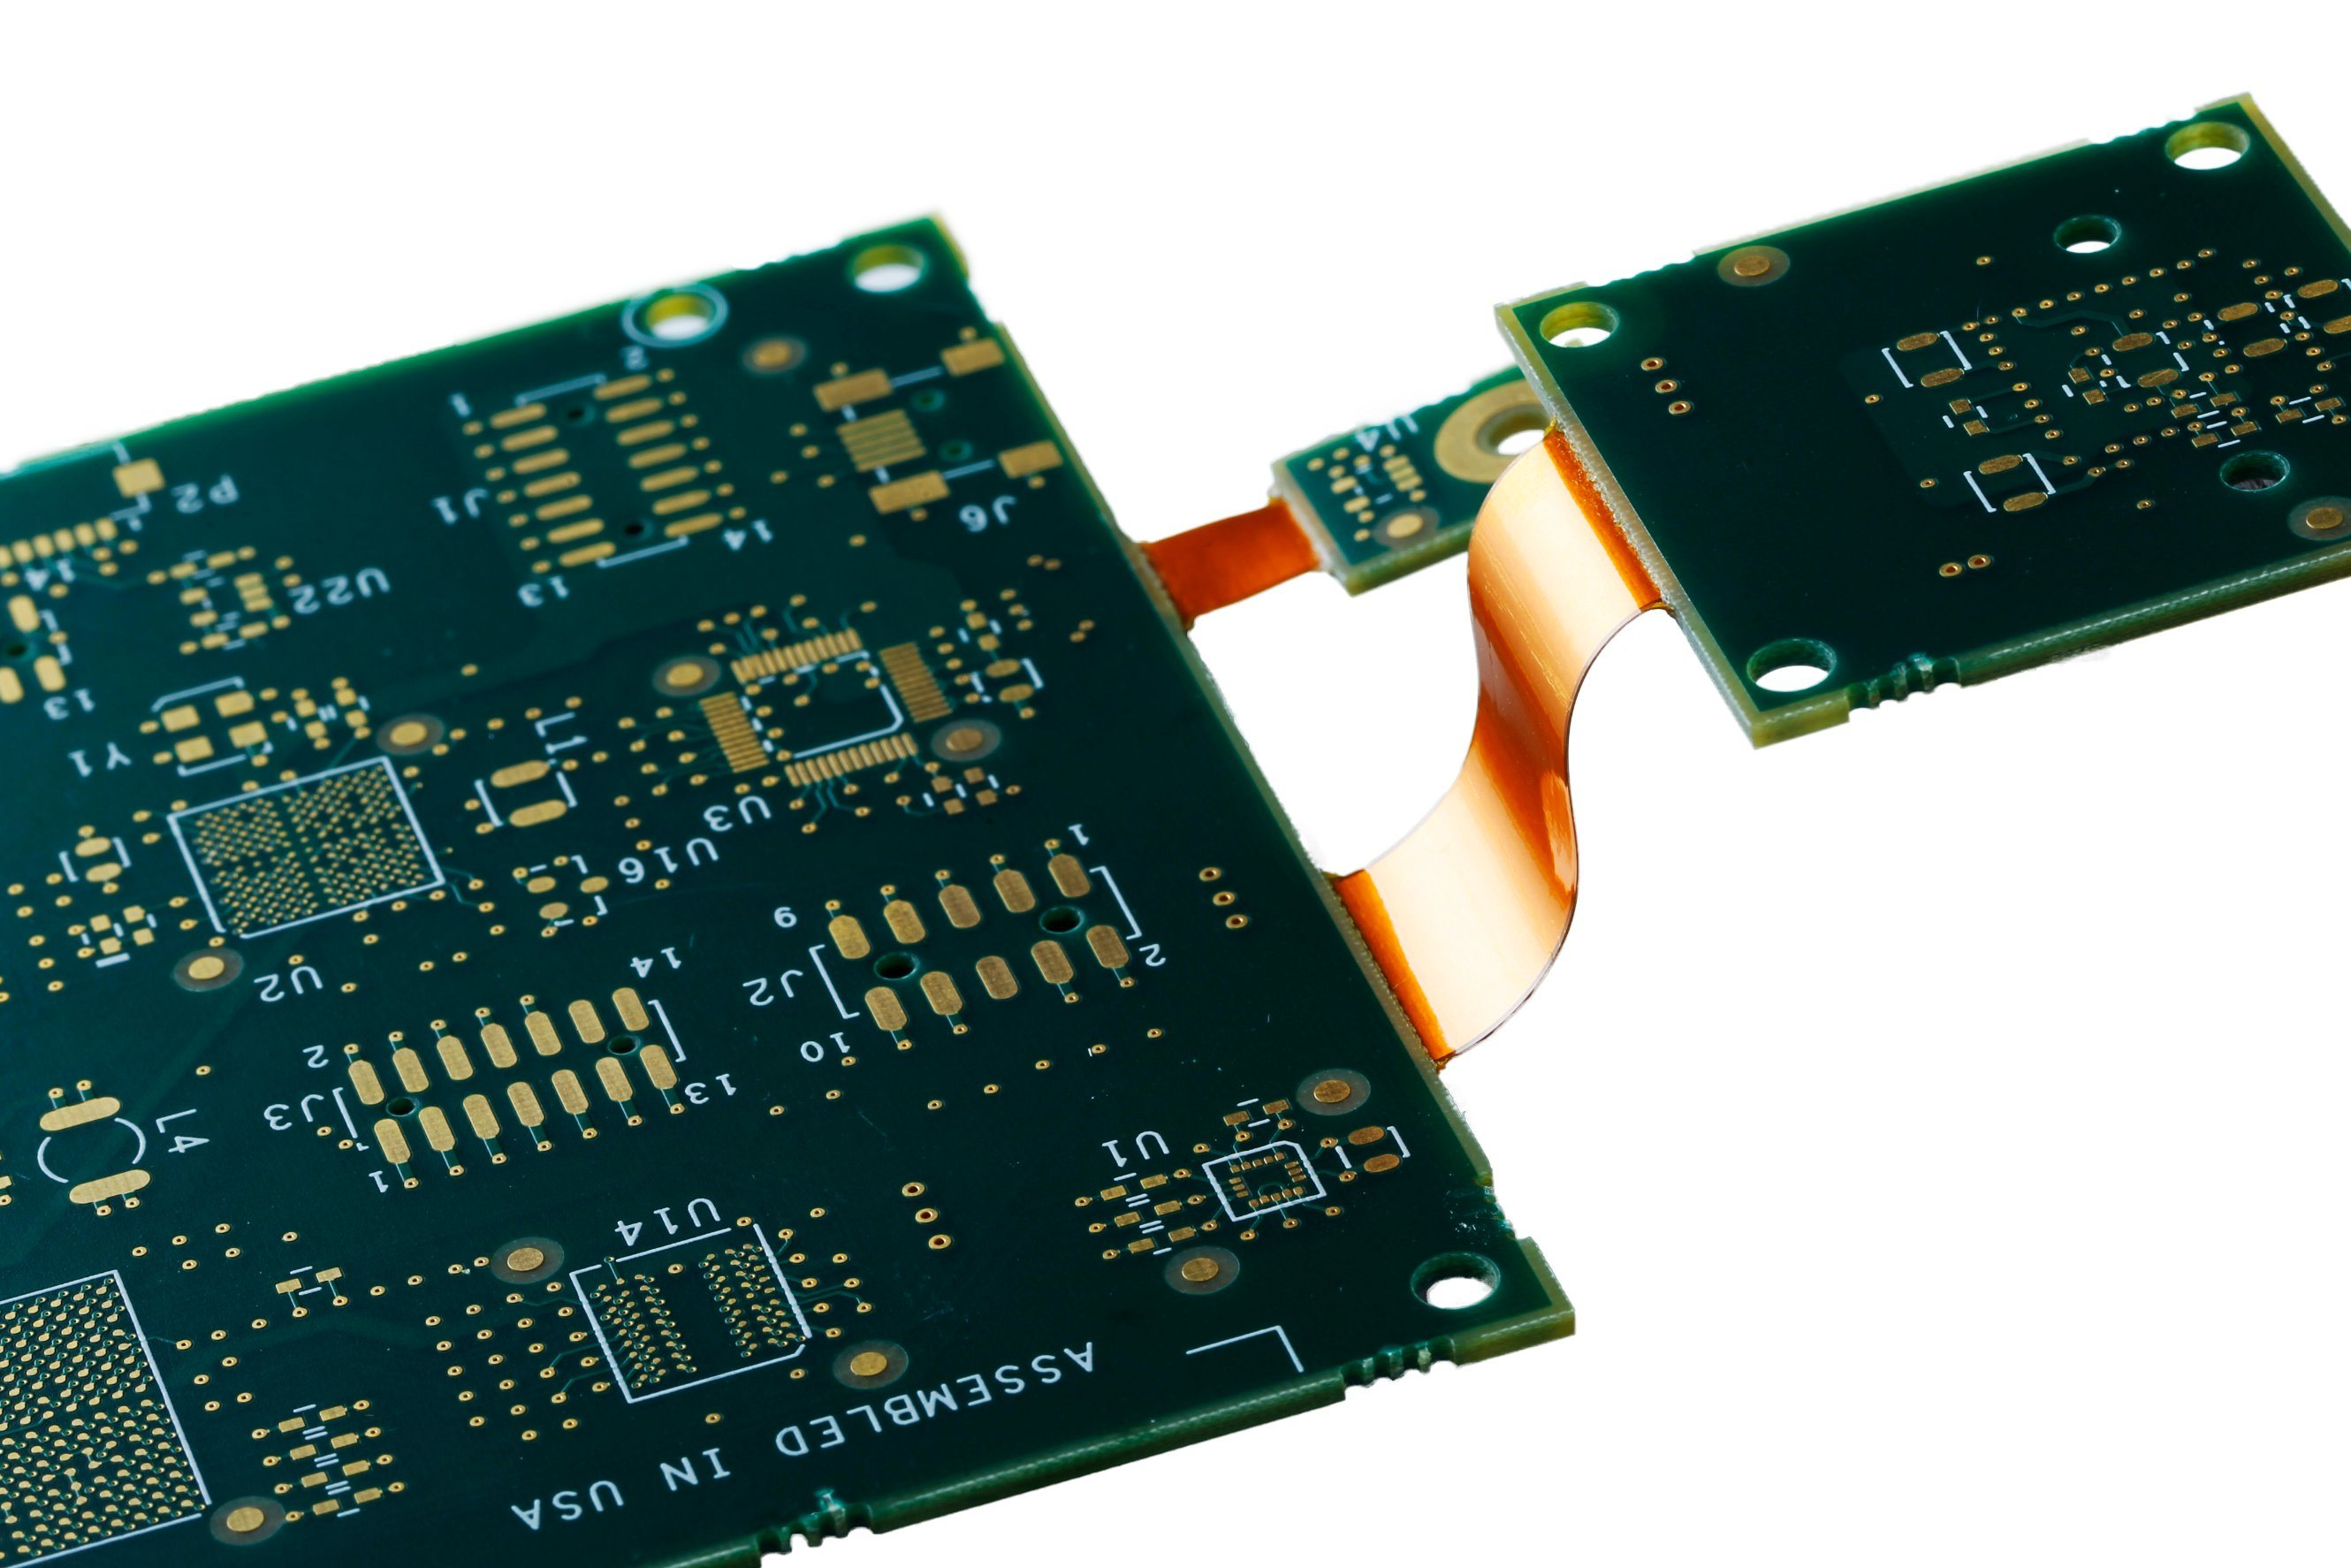 Rigid Flex Assembly Polyimide 6 Layer Fpc Multilayer Printed Circuit Board Layout Design China Oz Copper Flexible